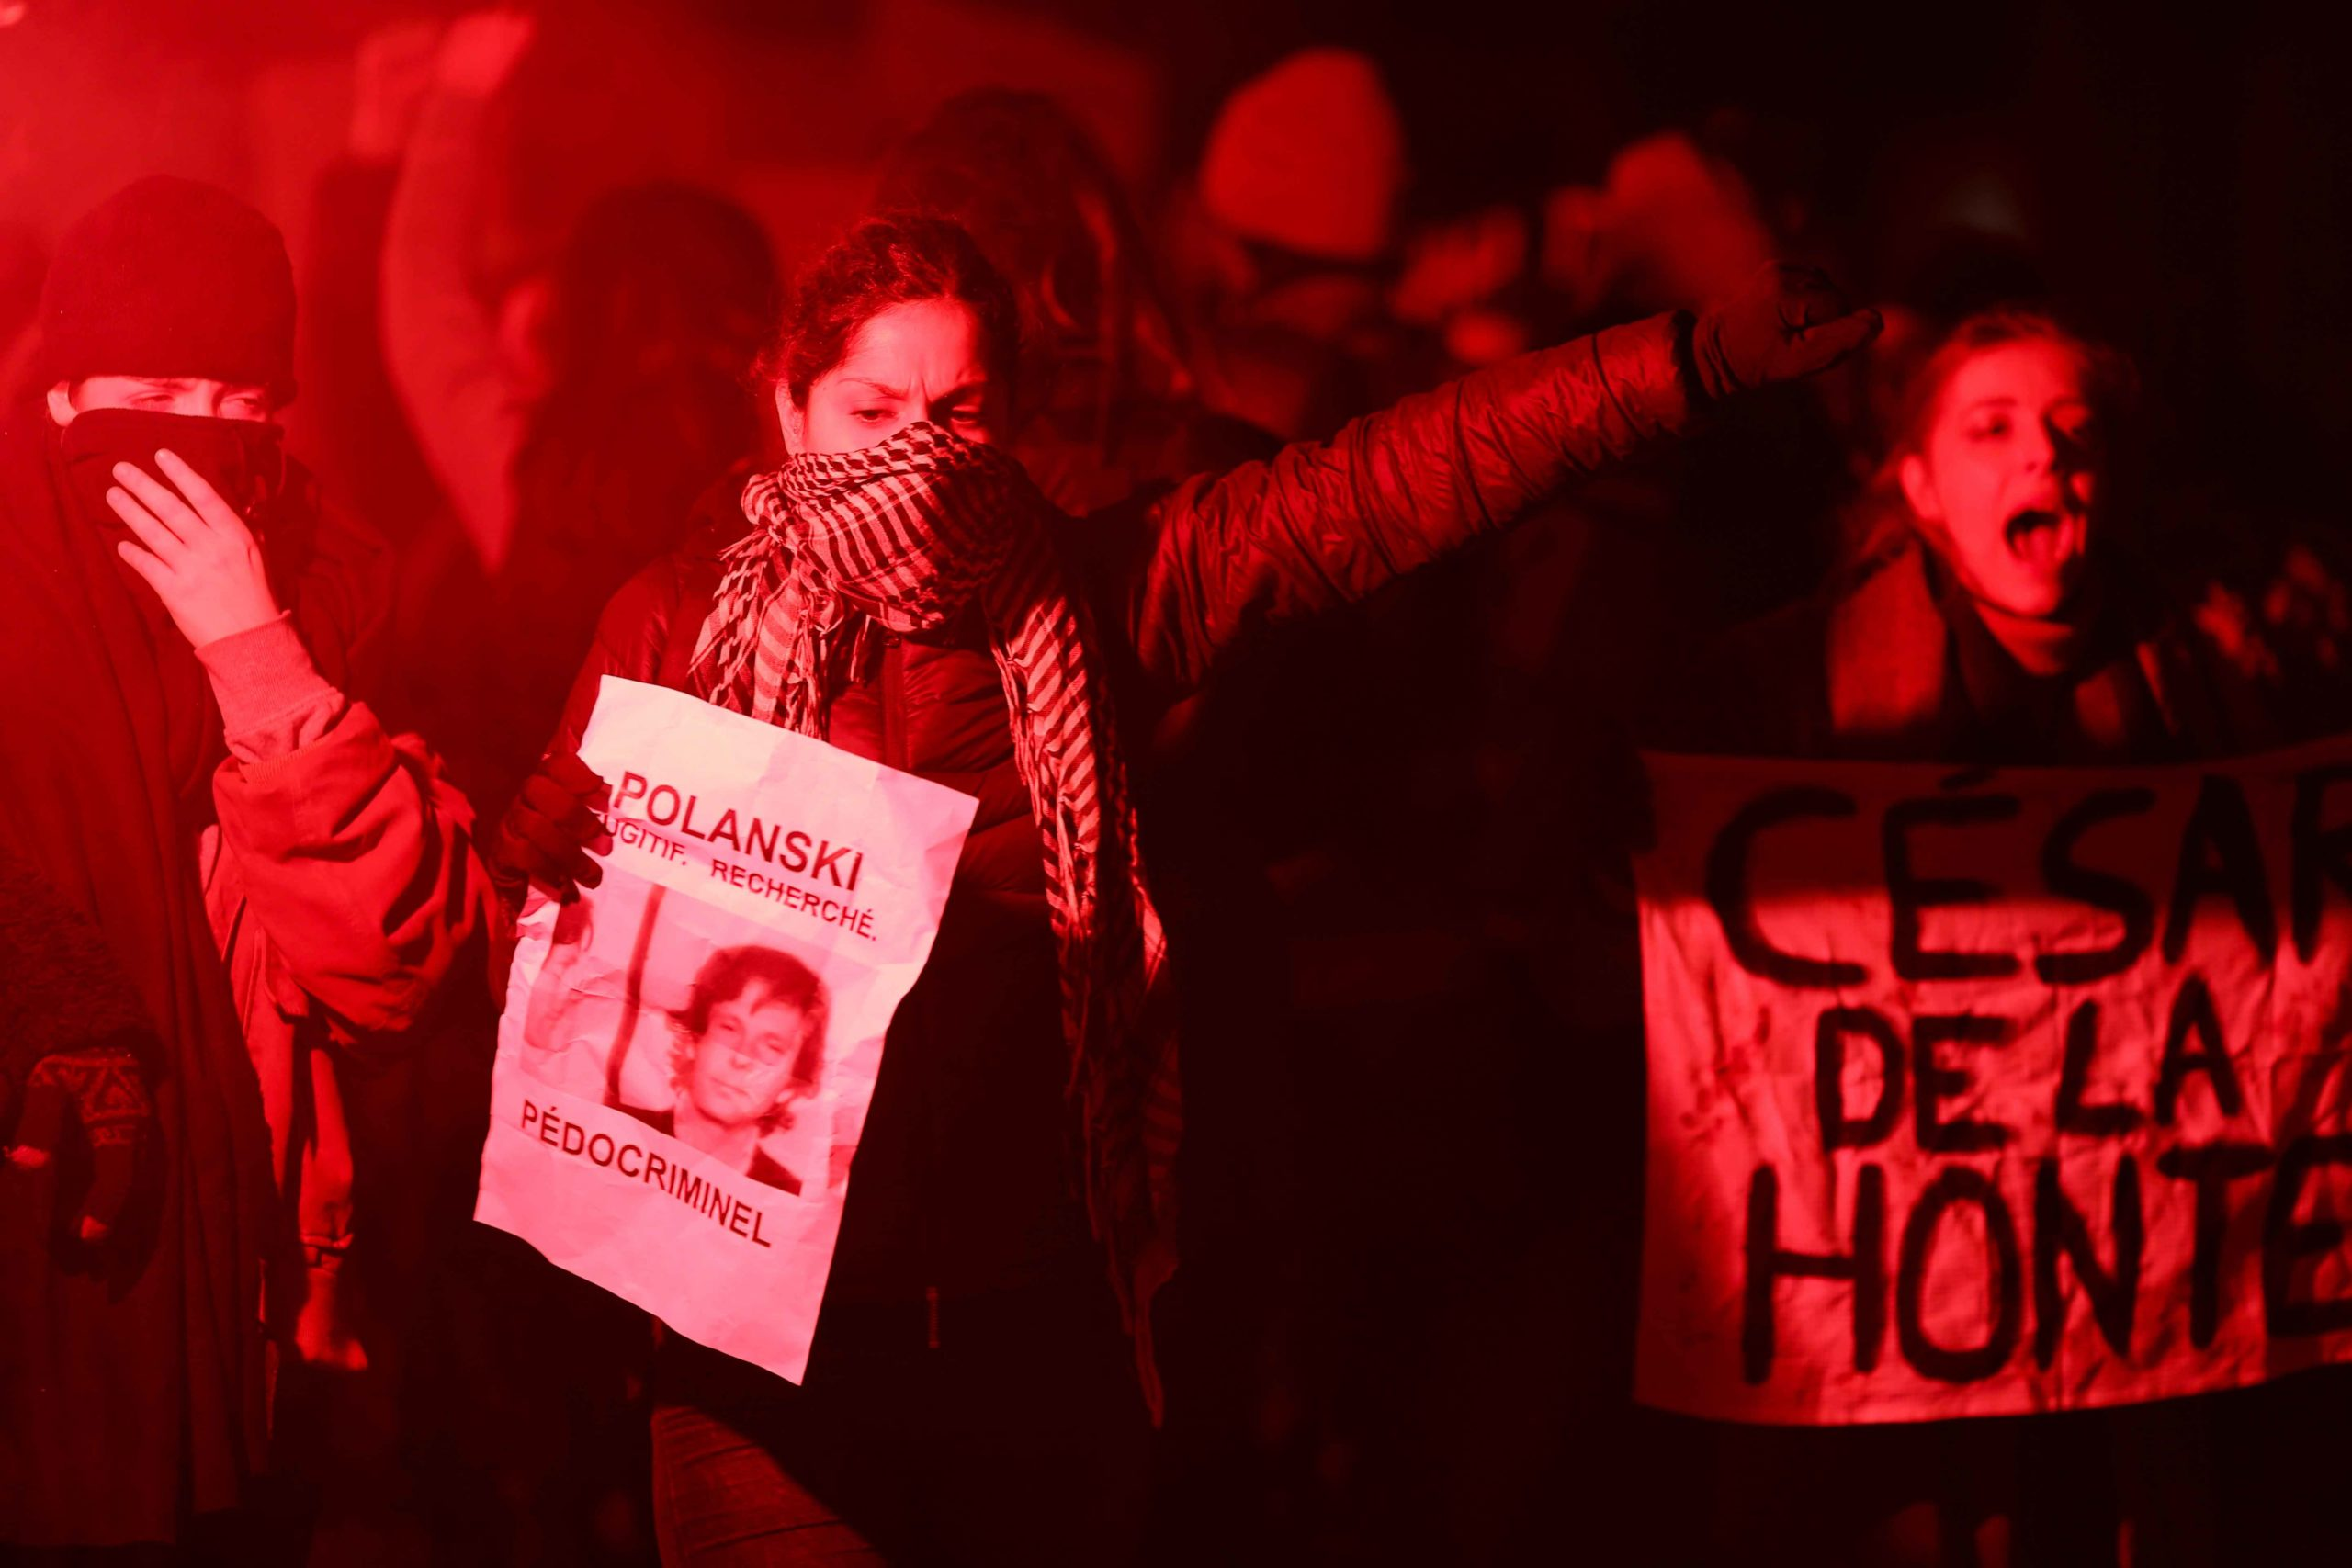 Feminist activists holding signs and red flares demonstrate outside the Salle Pleyel in Paris as guests arrive for the 45th edition of the Cesar Film Awards ceremony on February 28, 2020. The academy organising France's Cesar awards is going through a cris